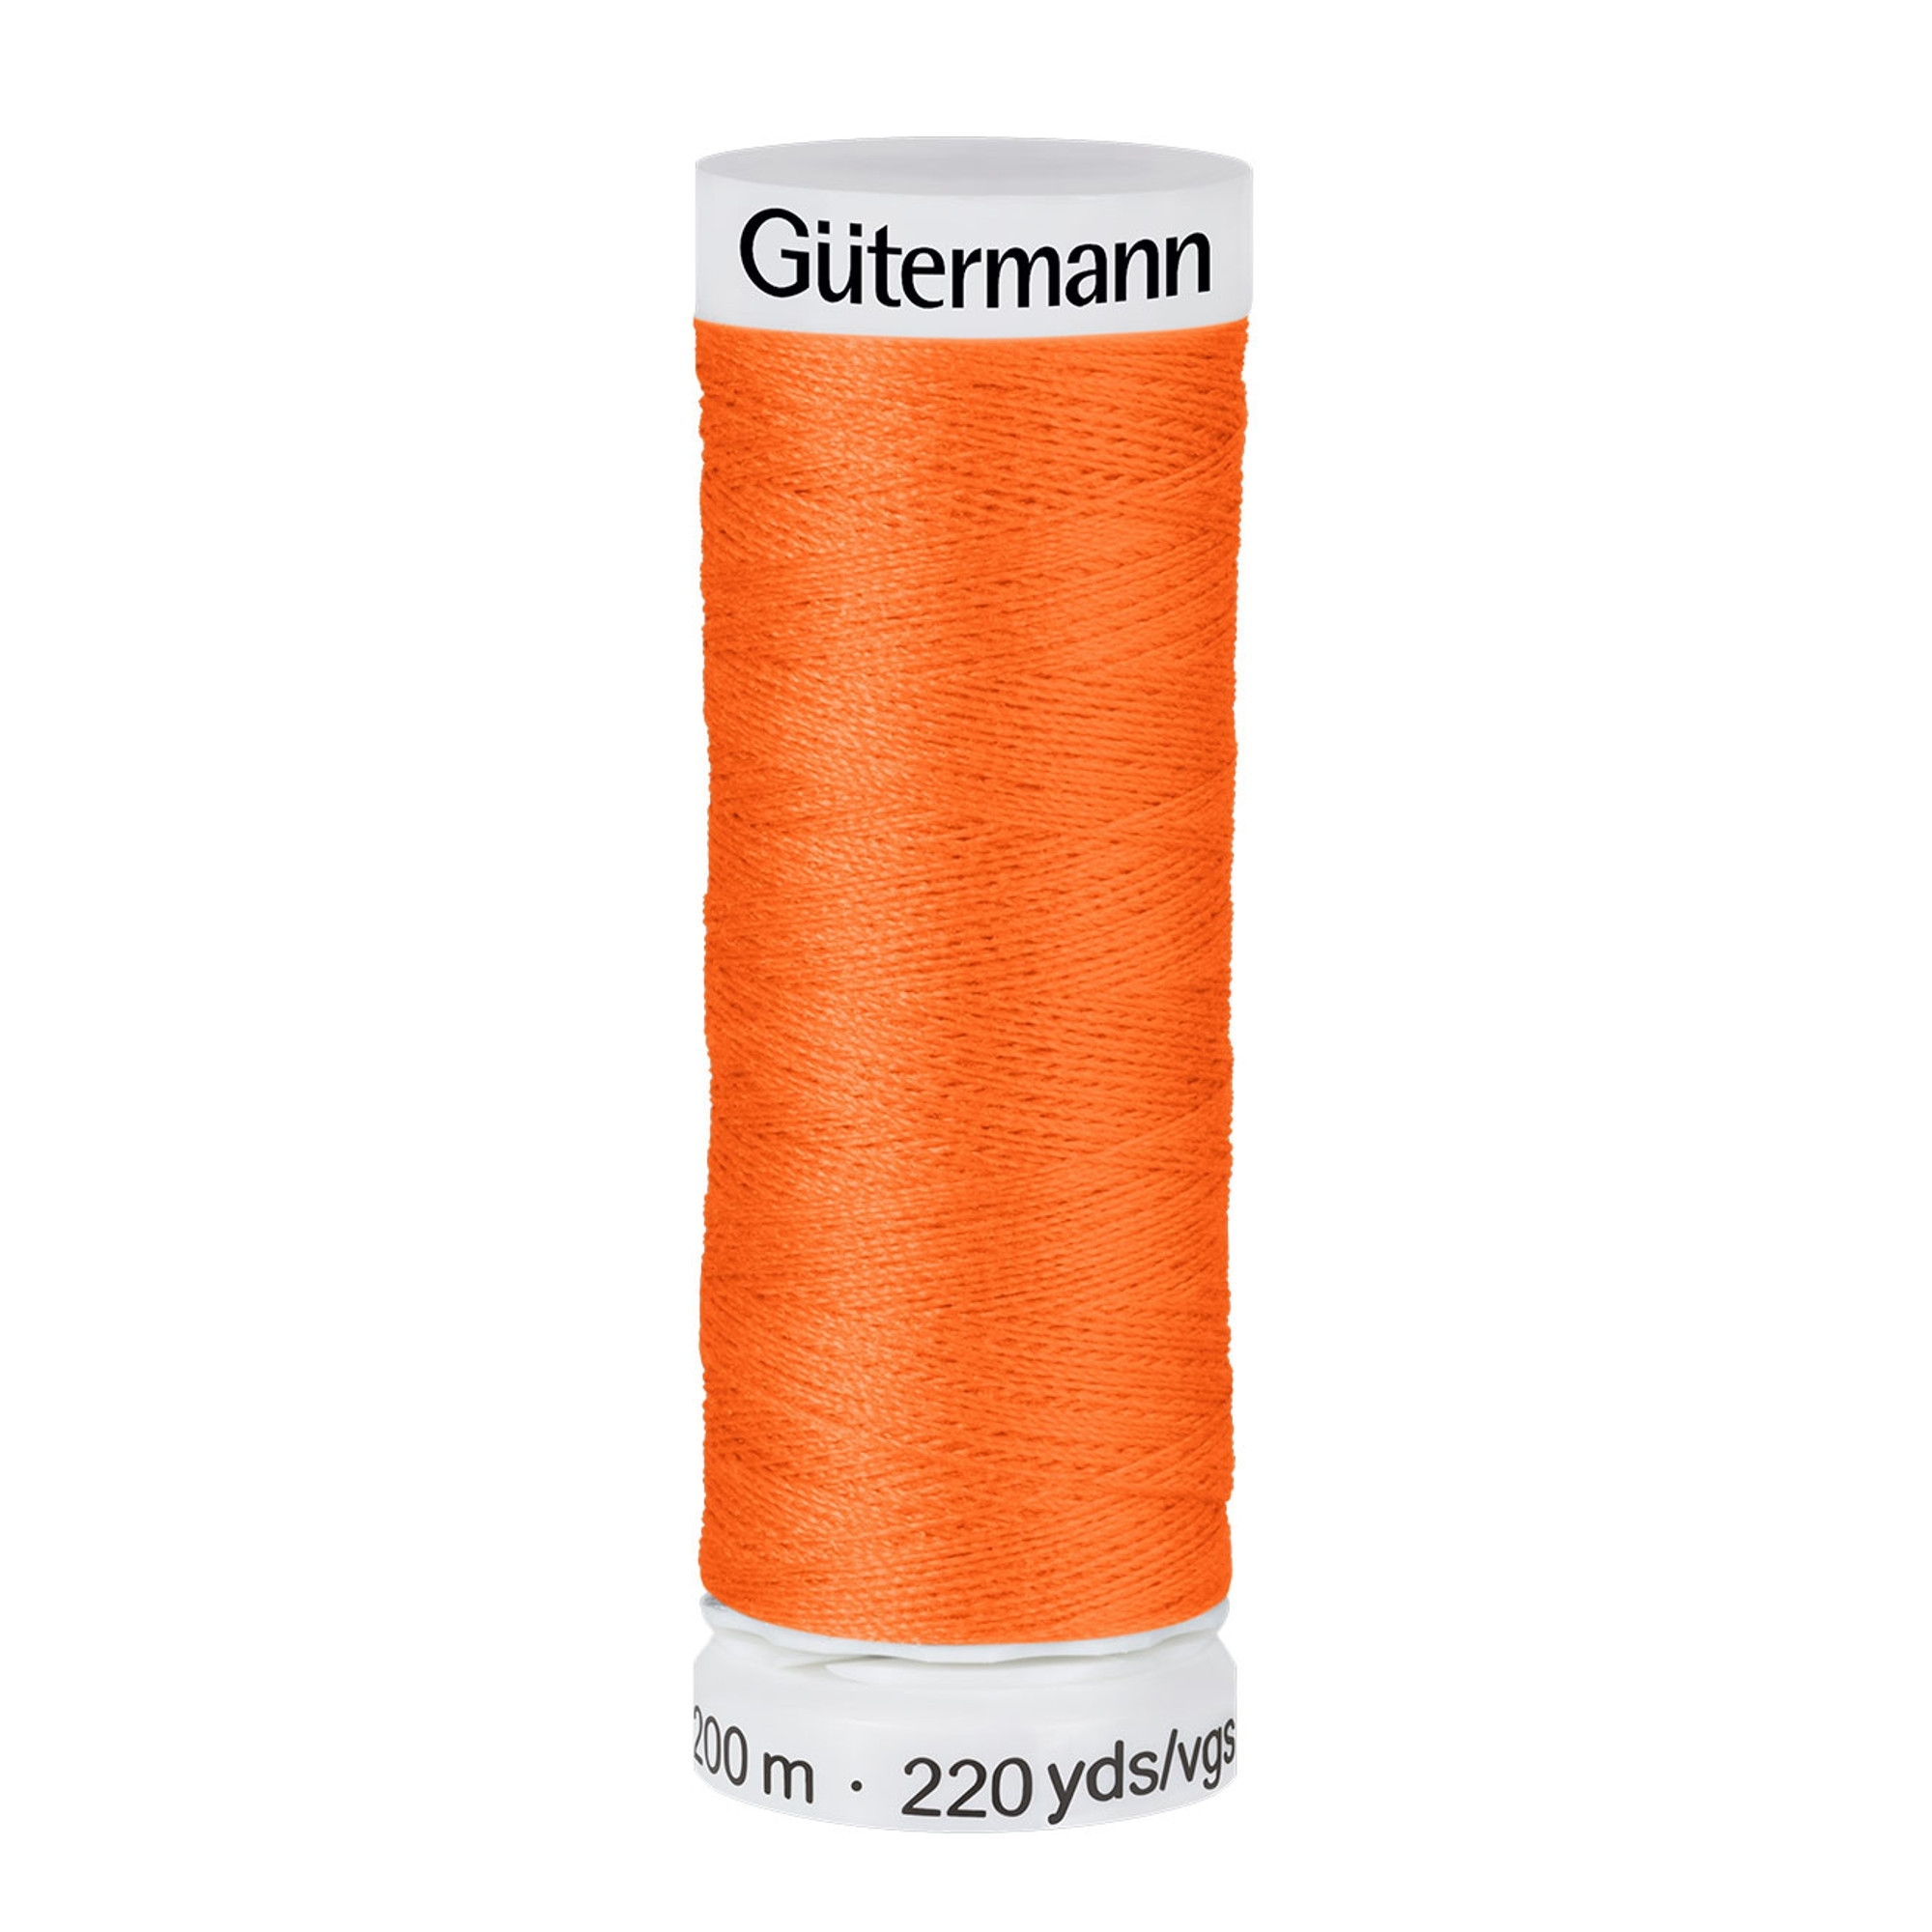 Gütermann Allesnäher (351) orange | 200M-351 | orange